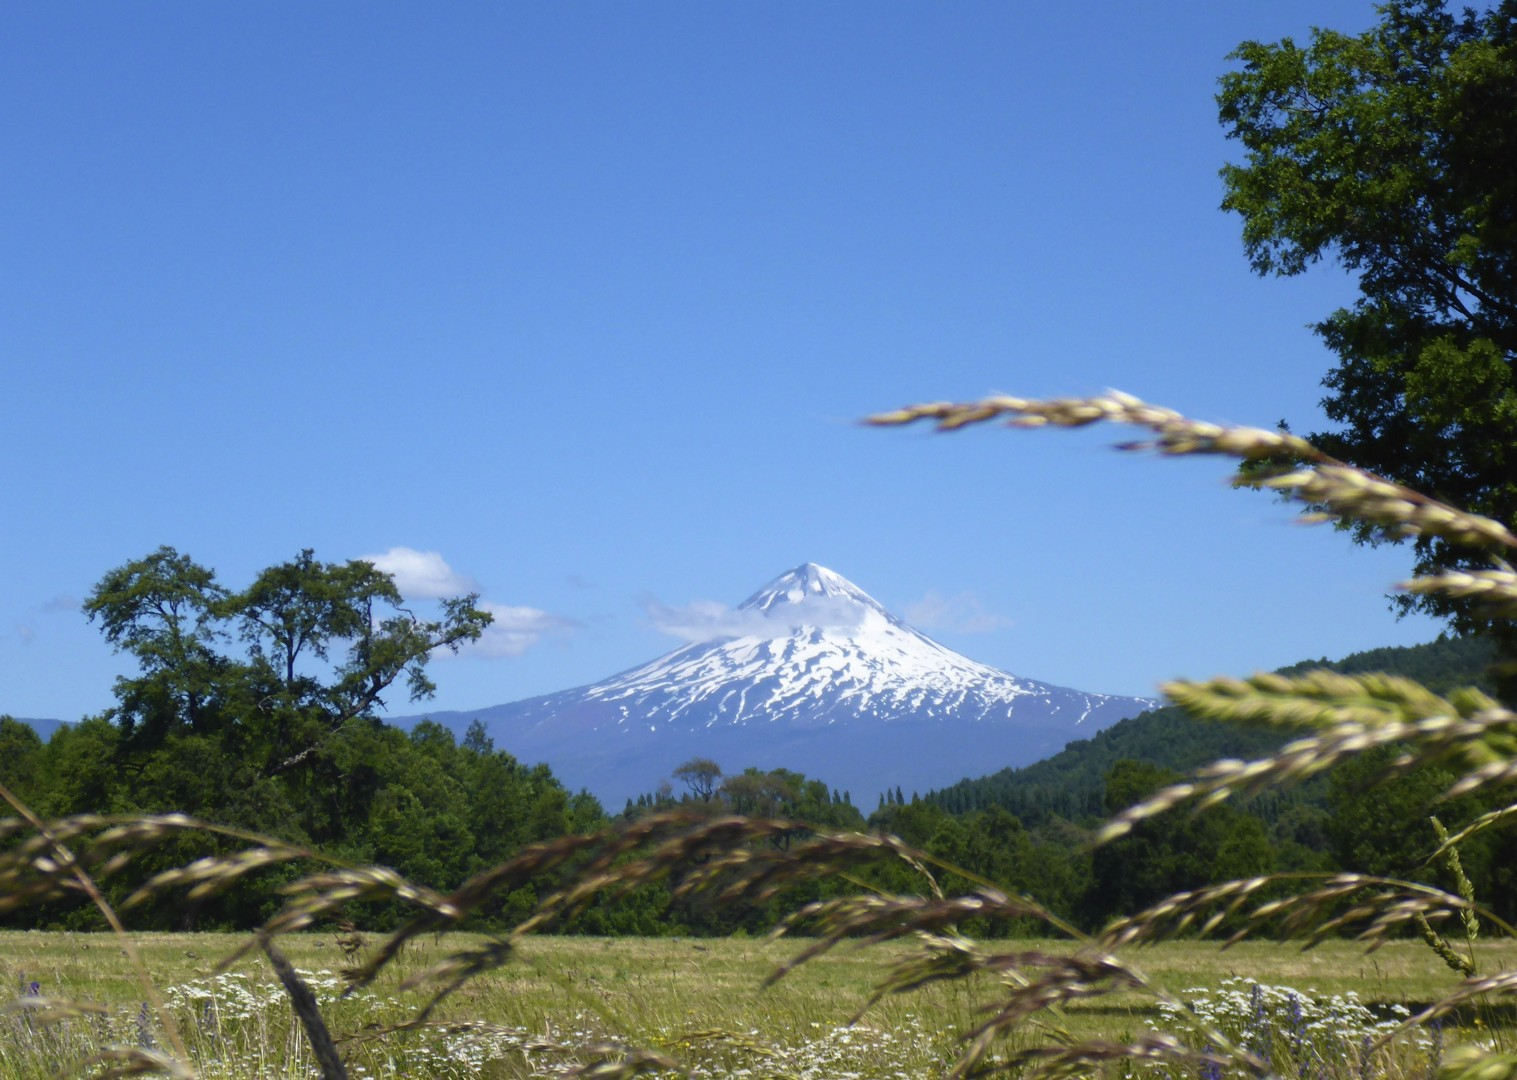 chile-landscape-valcano.jpg - Chile and Argentina - Lake District - Cycling Adventures